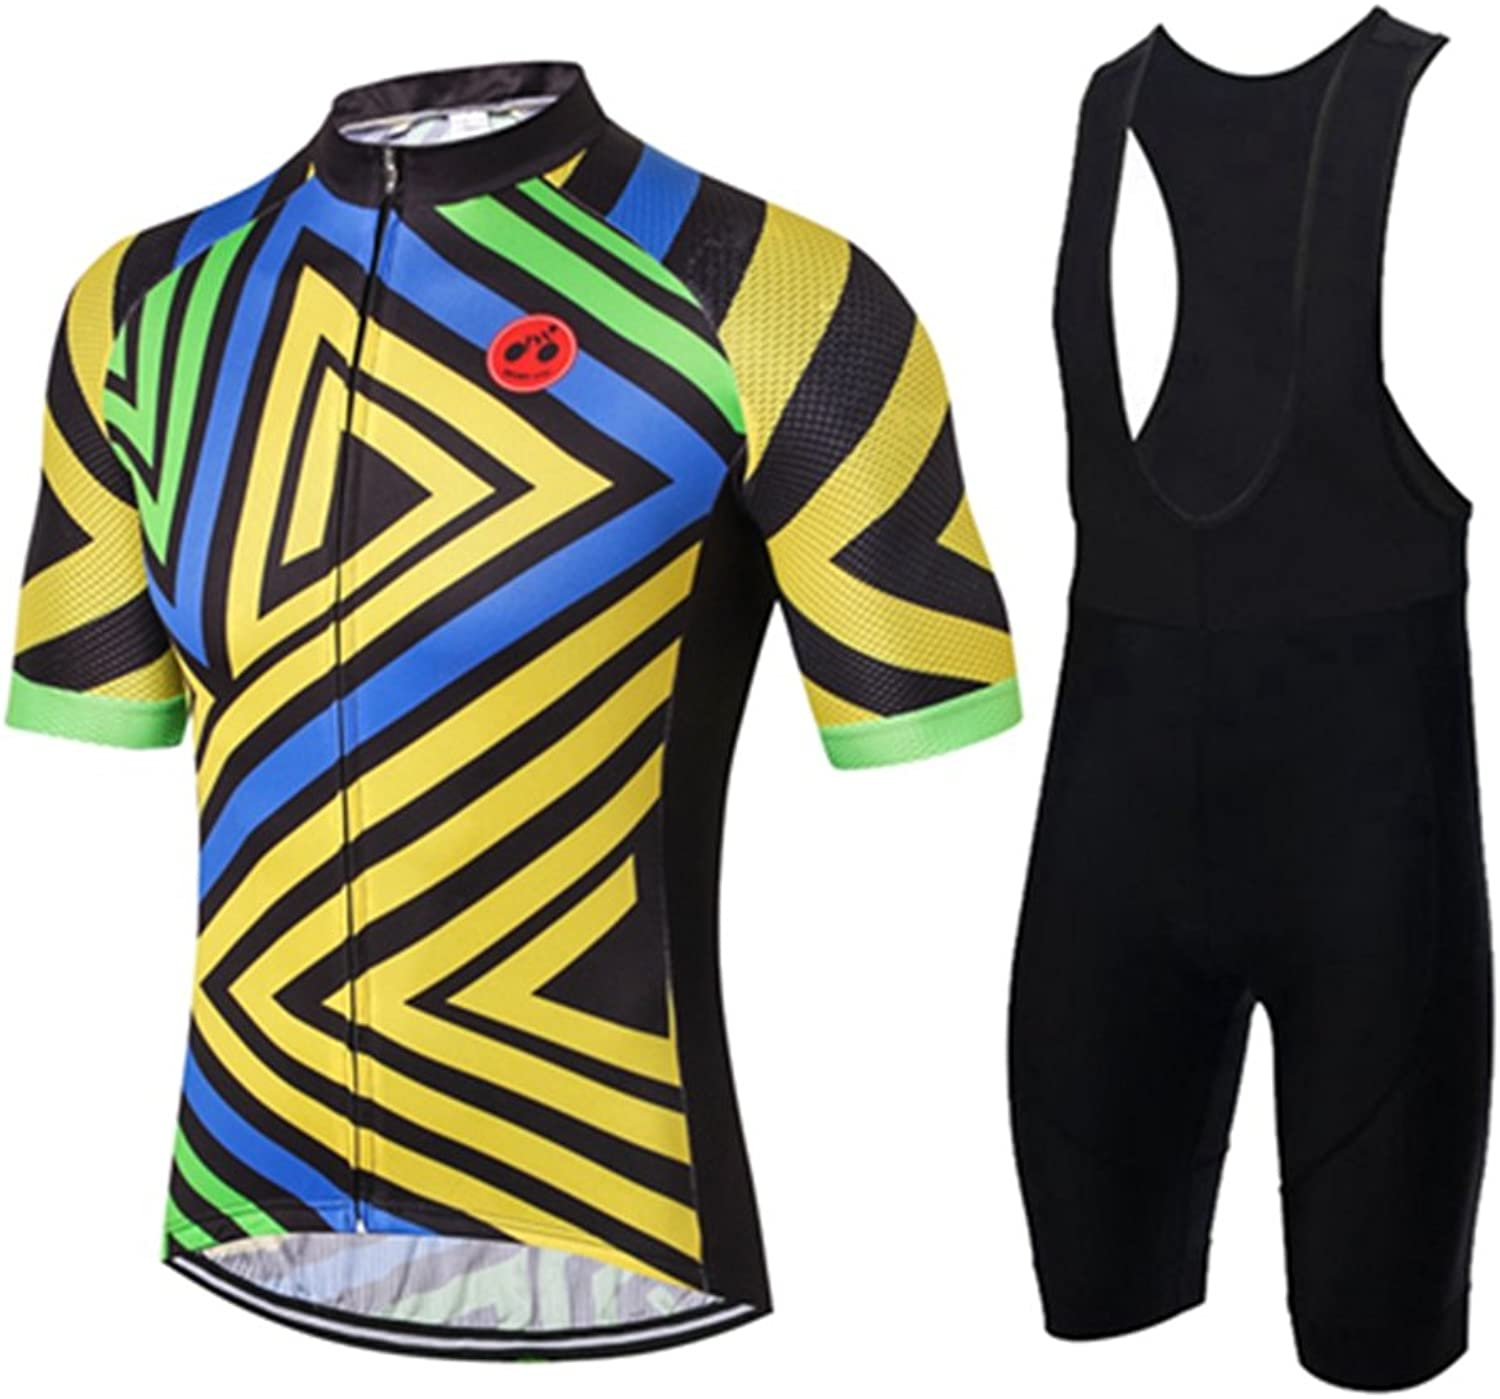 Shenshan Men's Short Sleeve Cycling Jersey 3D Padded Bib Short Sets